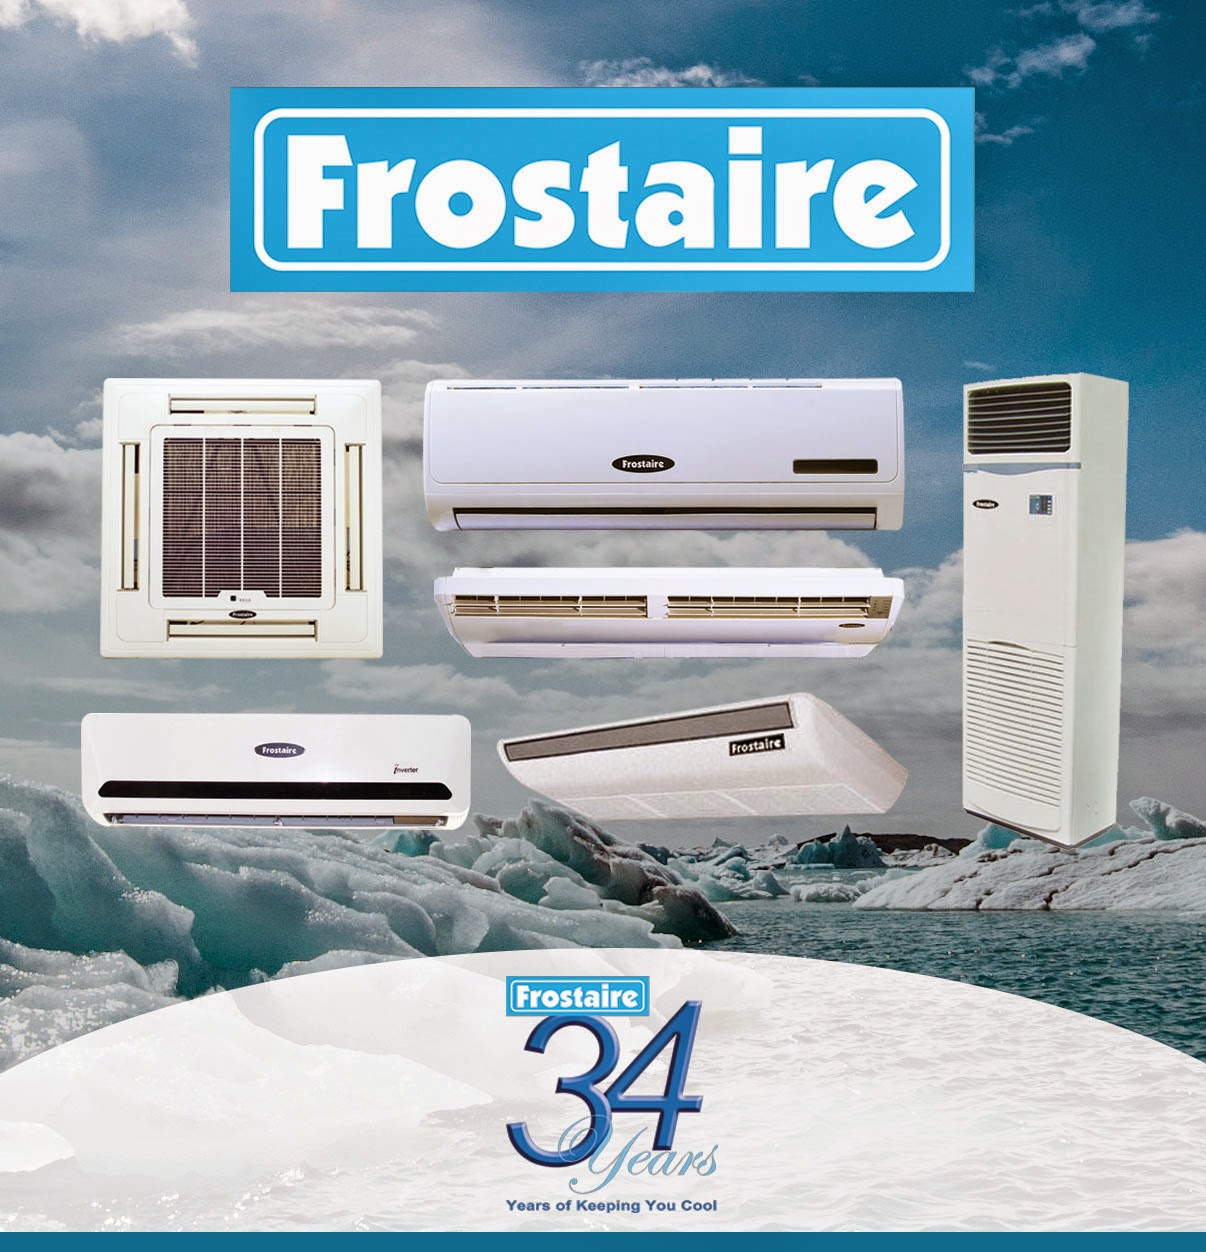 Frostaire product range